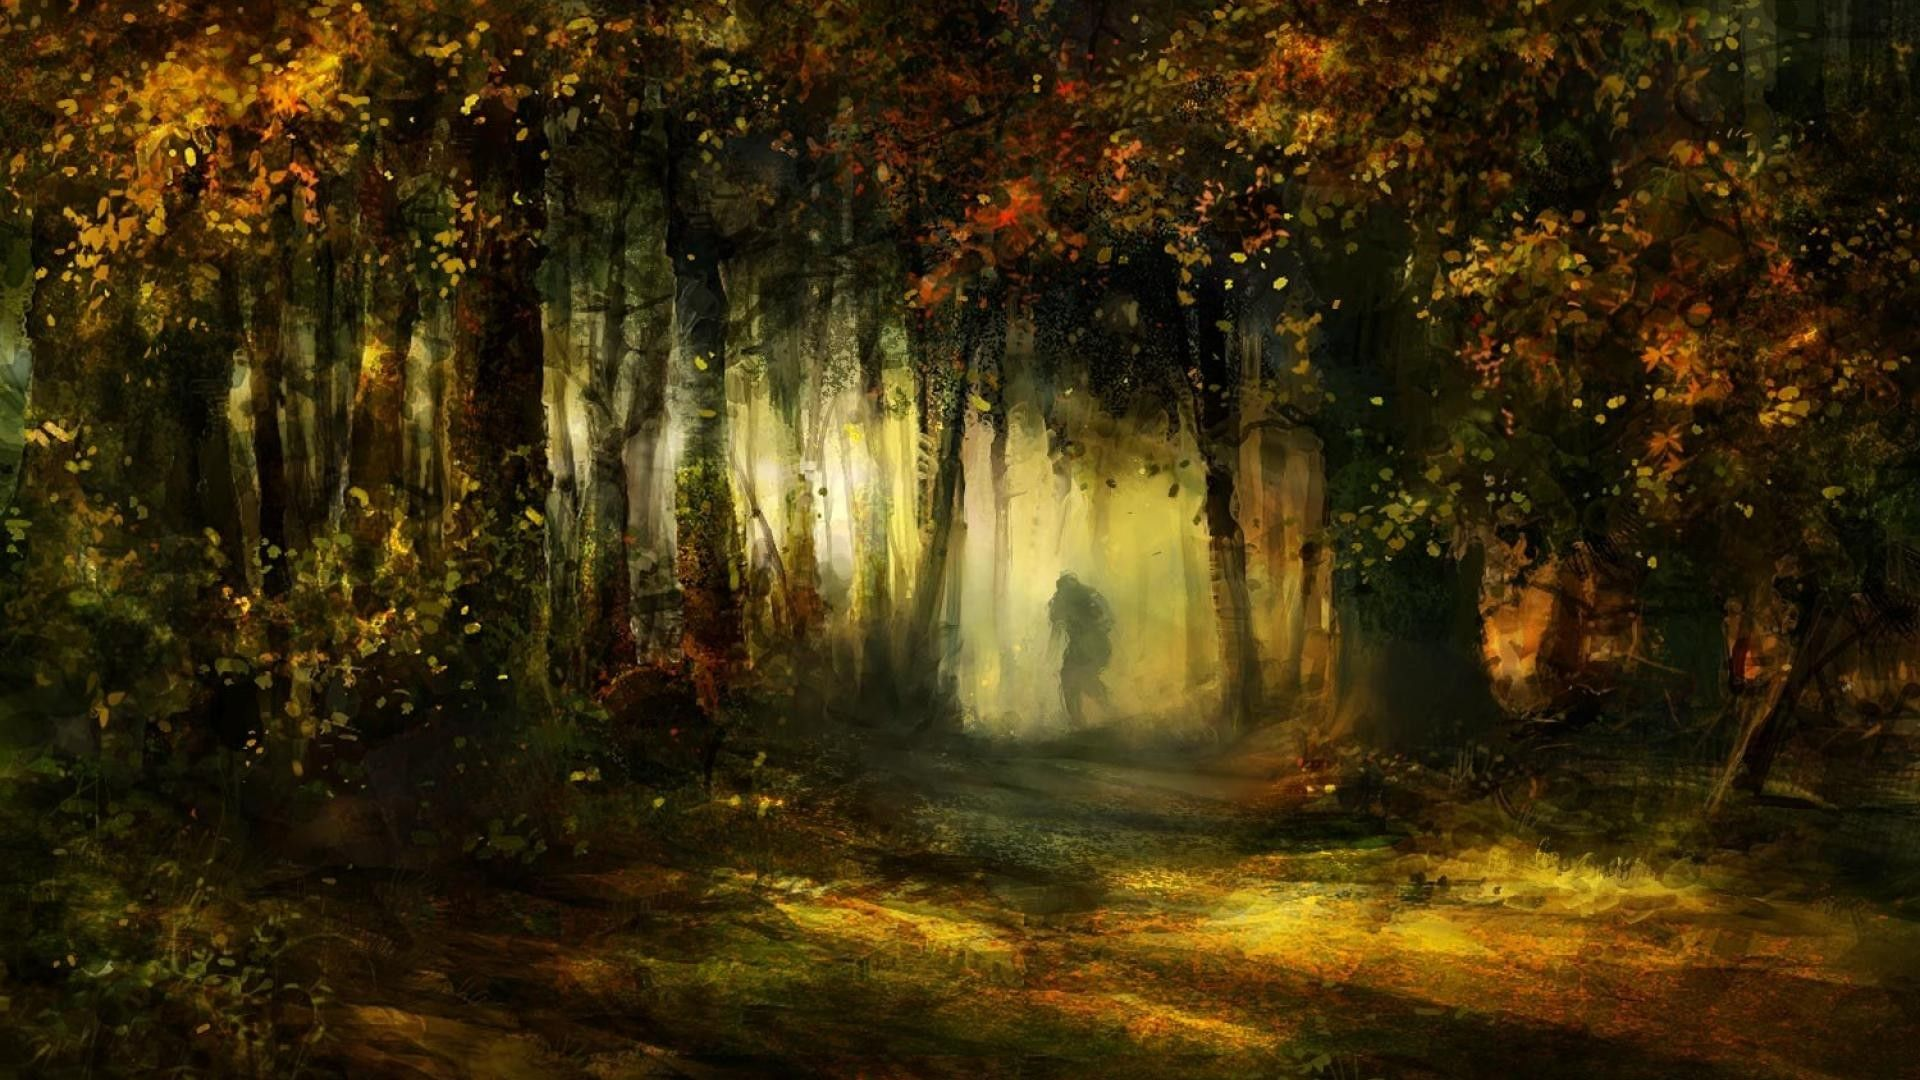 Nature Forest Tree Awesome Art Wallpaper1920x1080 Via Classy Bro